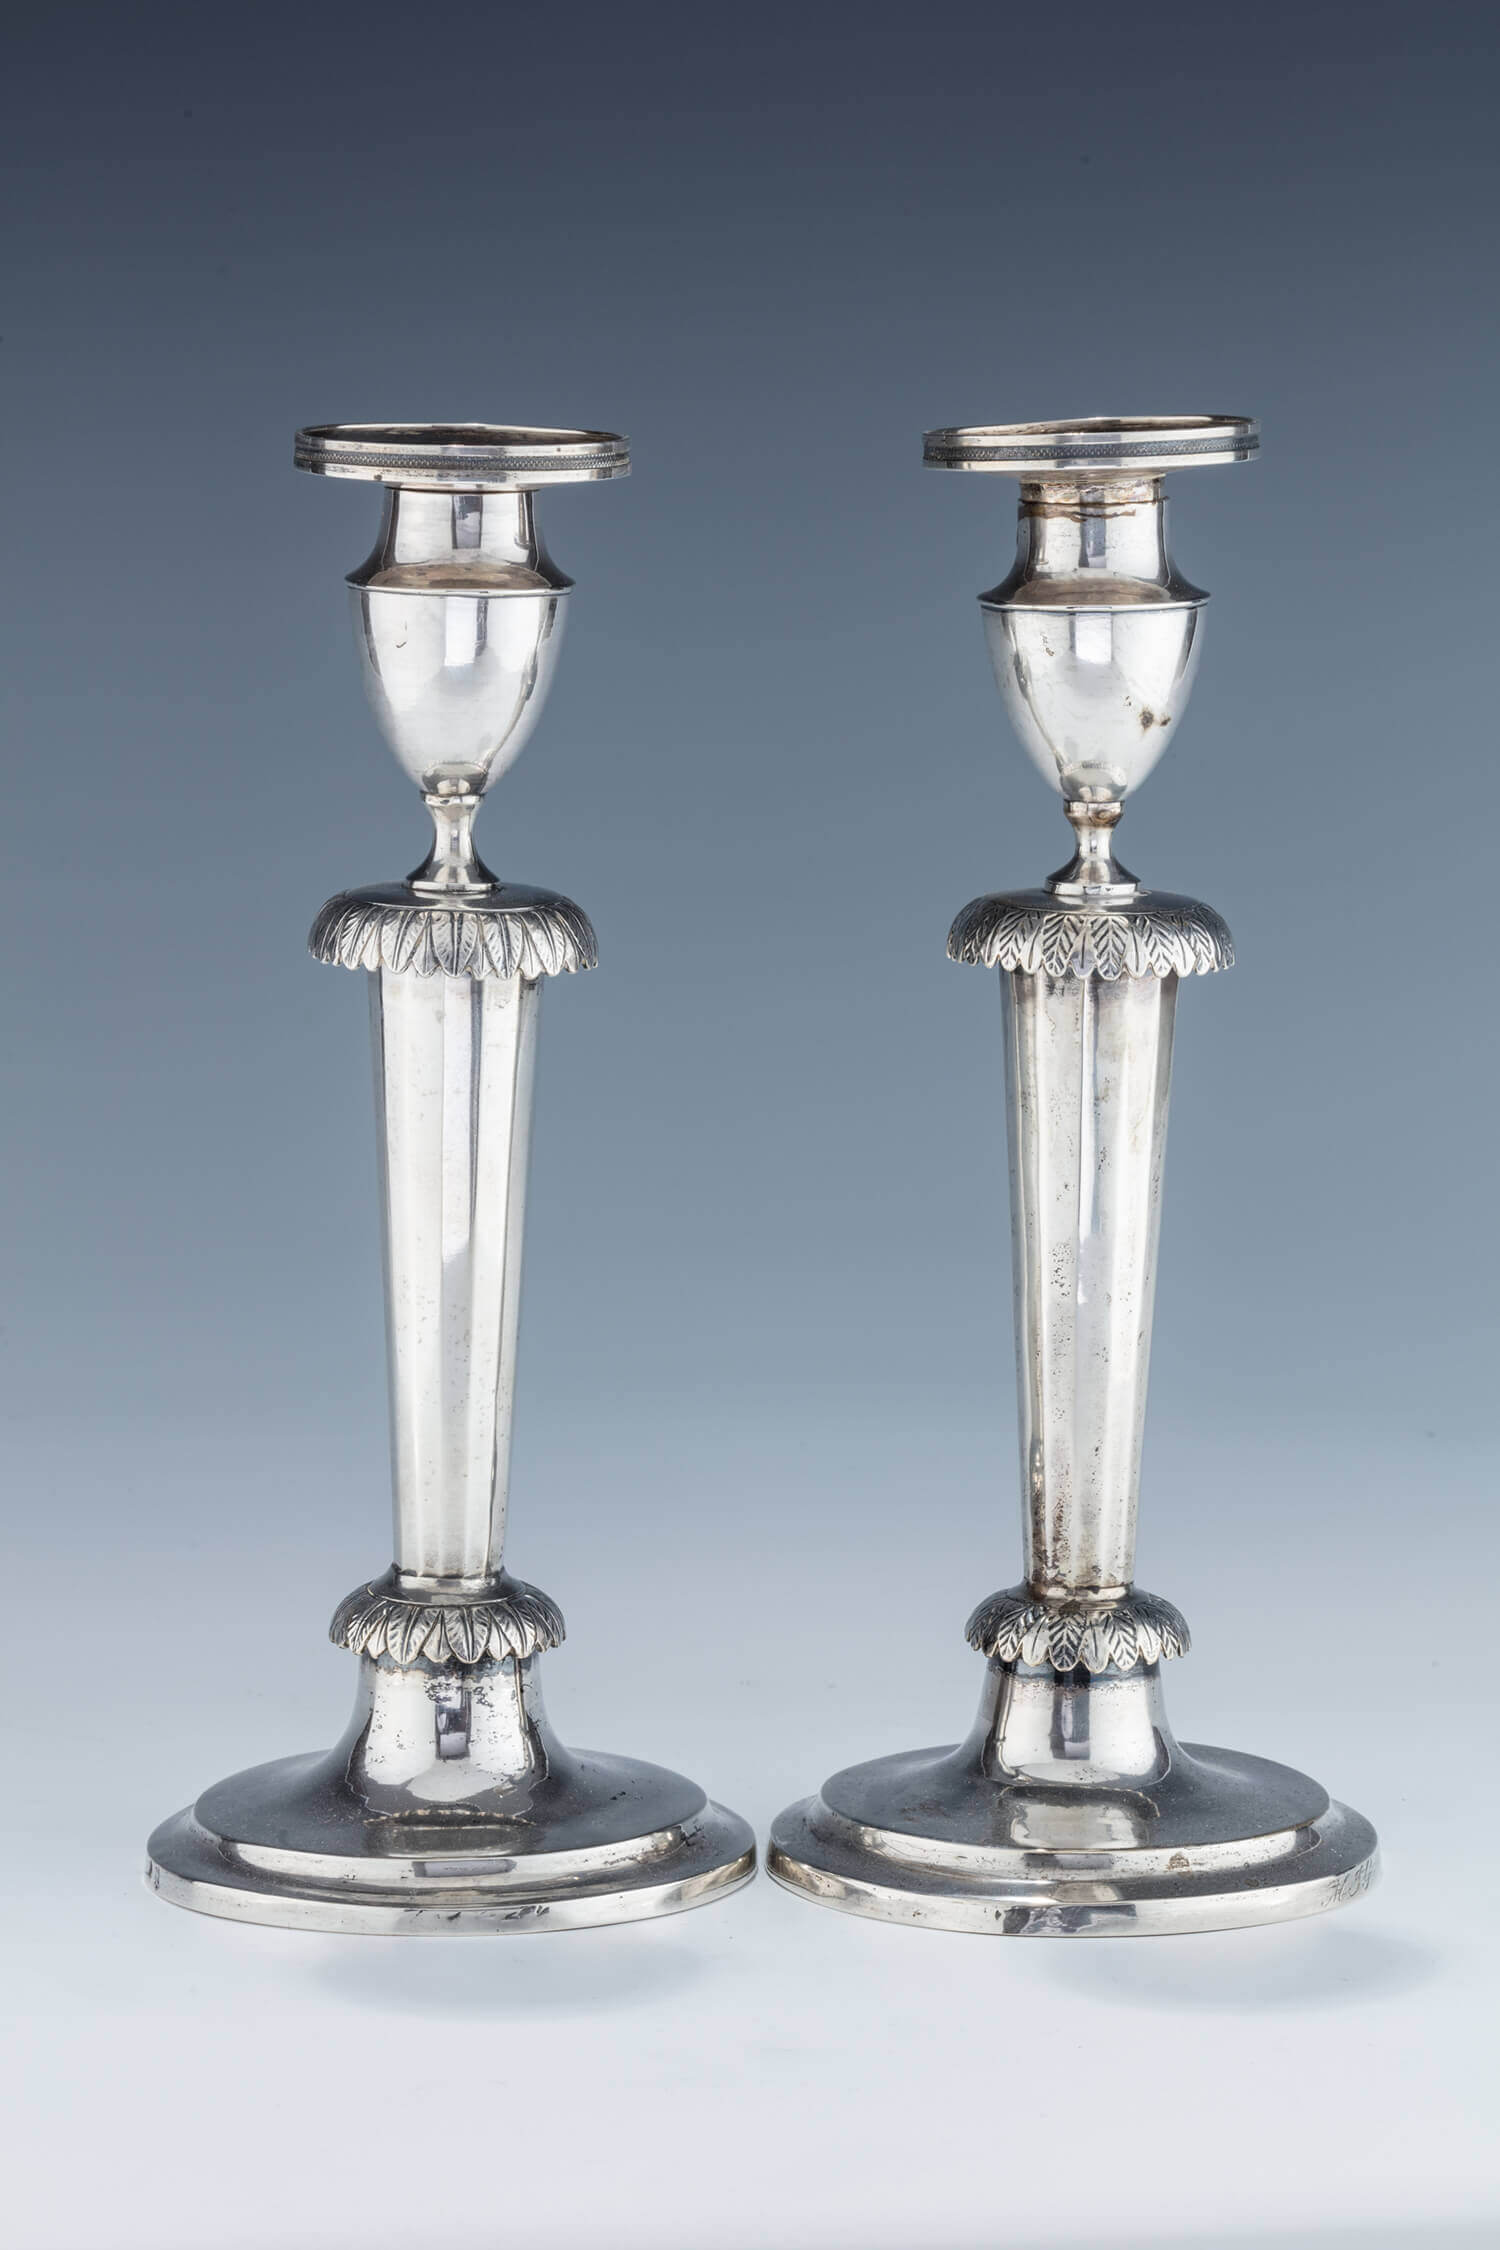 032. A PAIR OF SILVER CANDLESTICKS